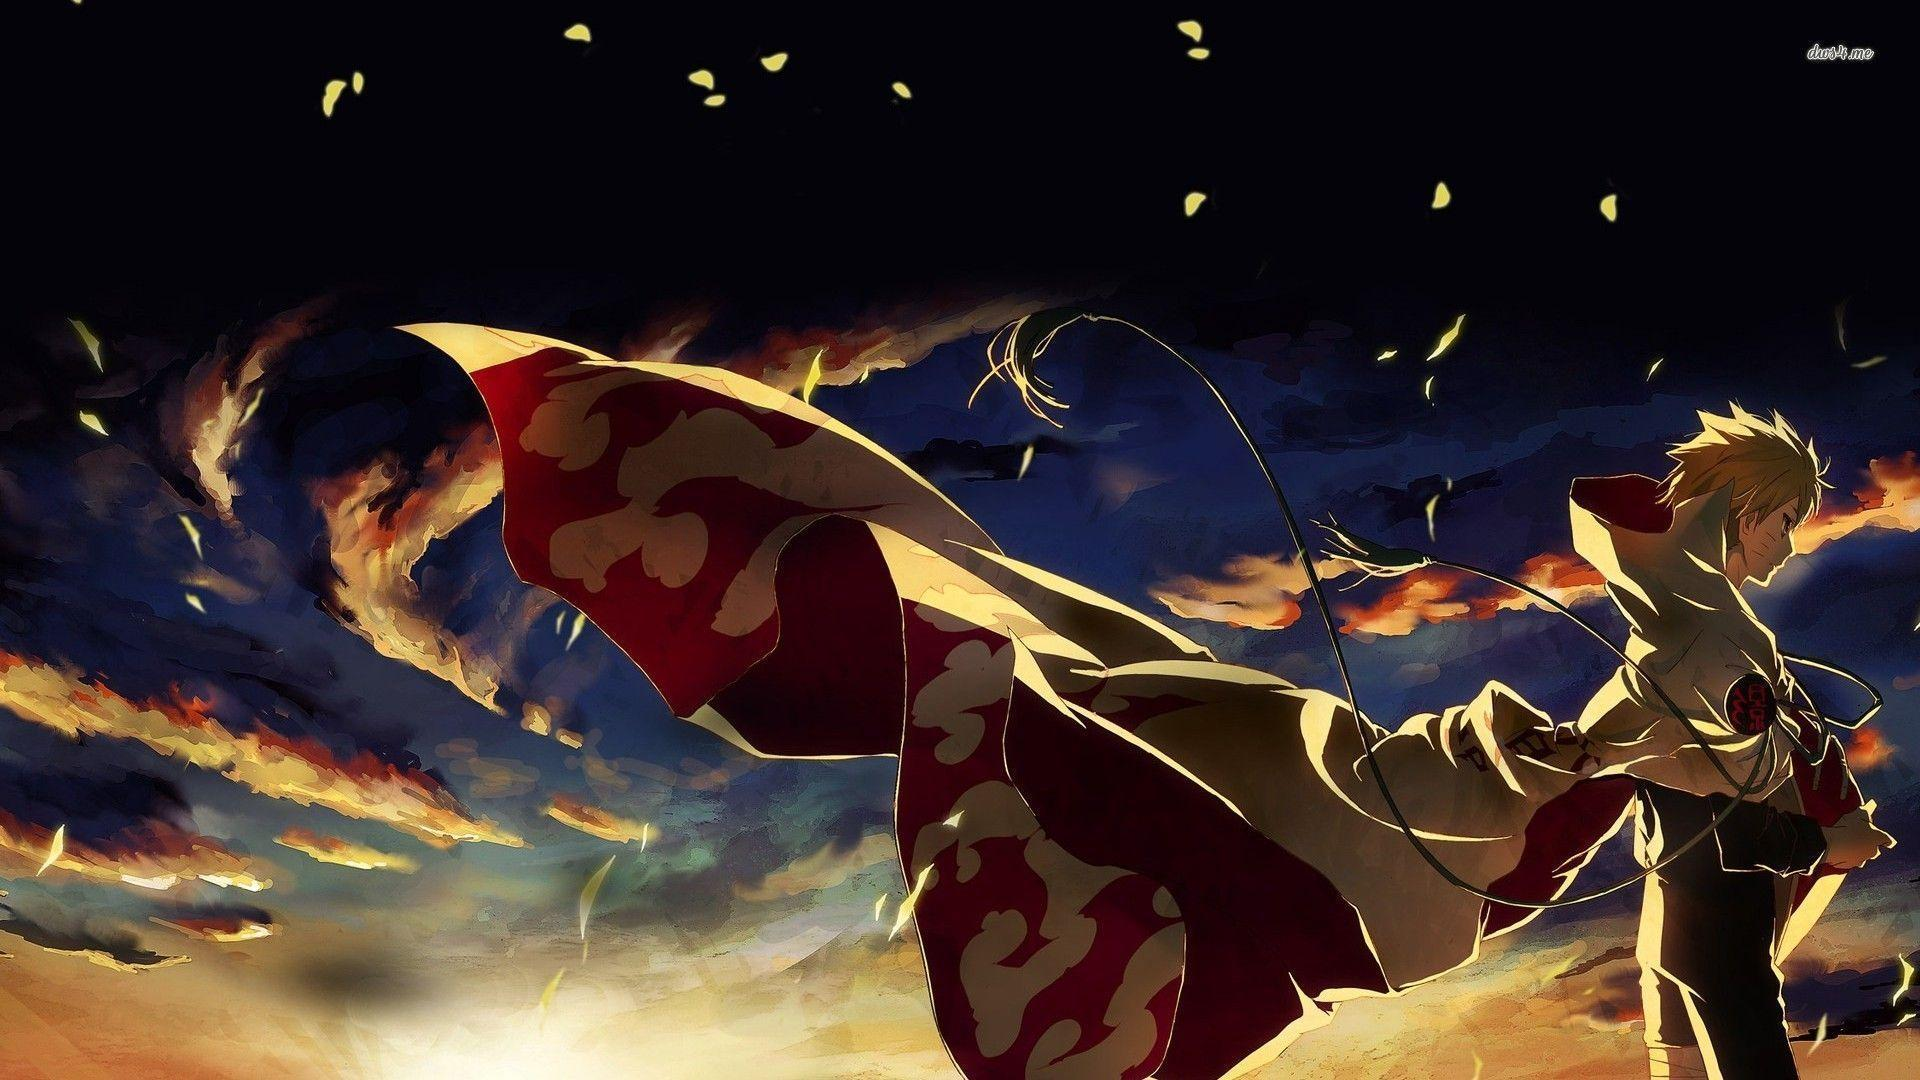 Naruto Wallpapers 2016 - Wallpaper cave